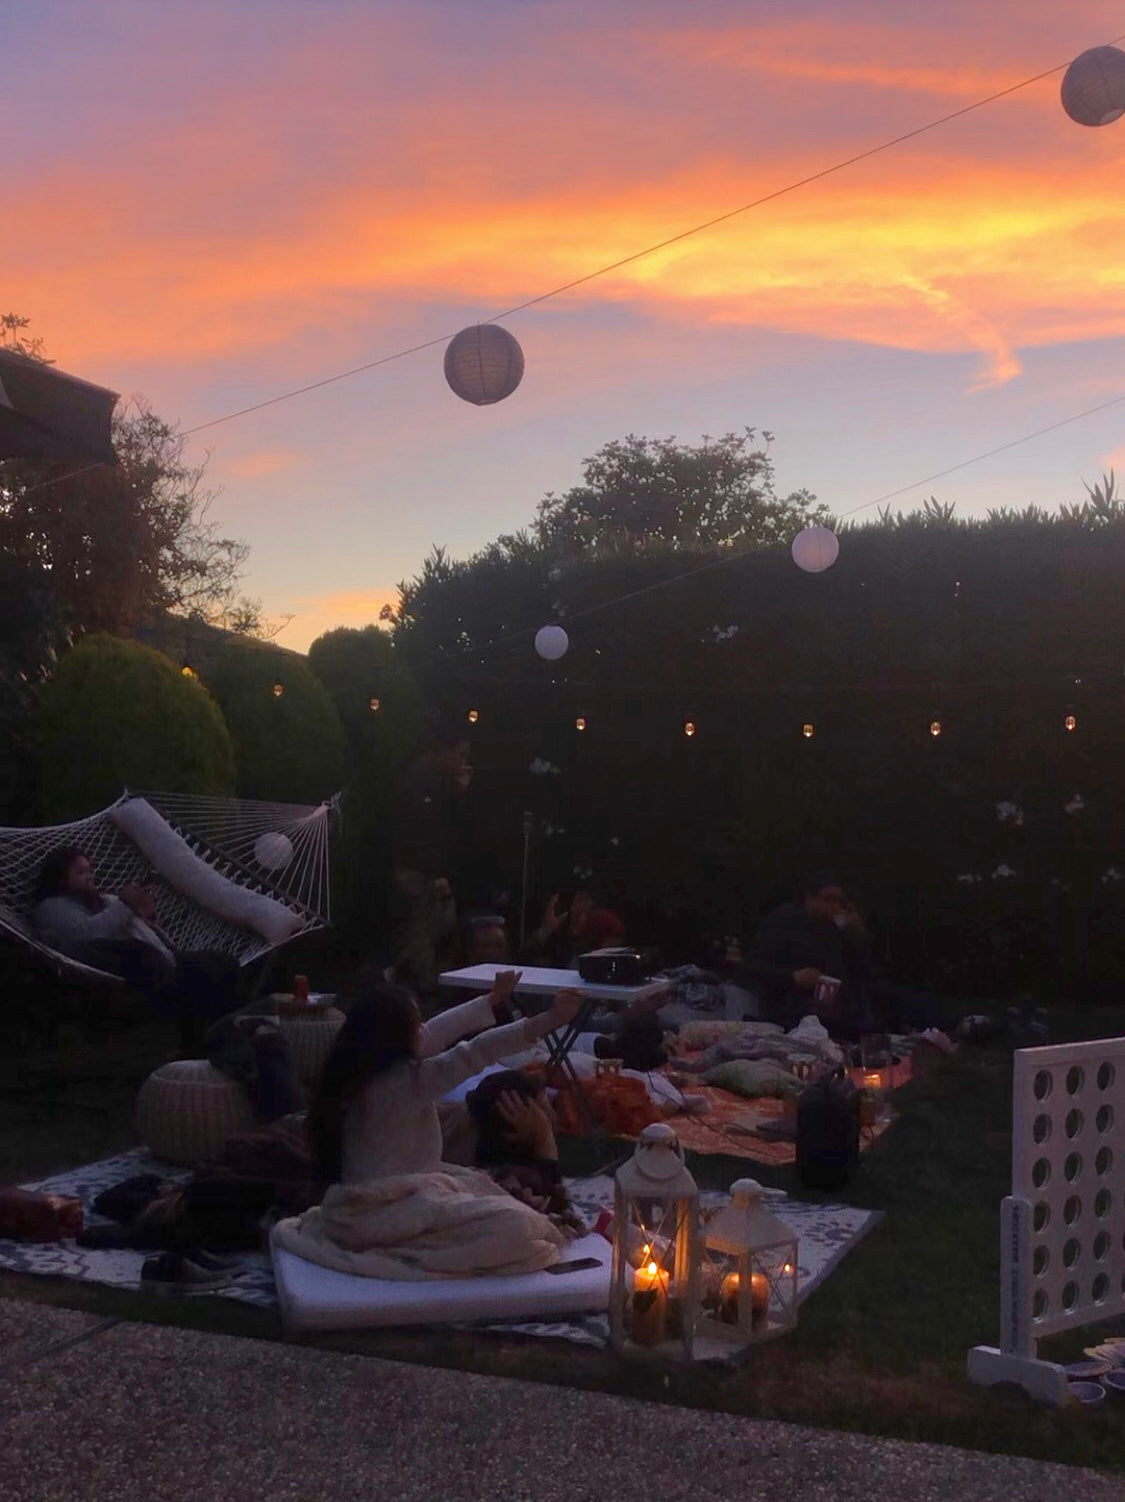 Sunset for Outdoor Movie Night Birthday Party - Boho Birthday - Backyard Movie Night at Sunset - Pretty Collected